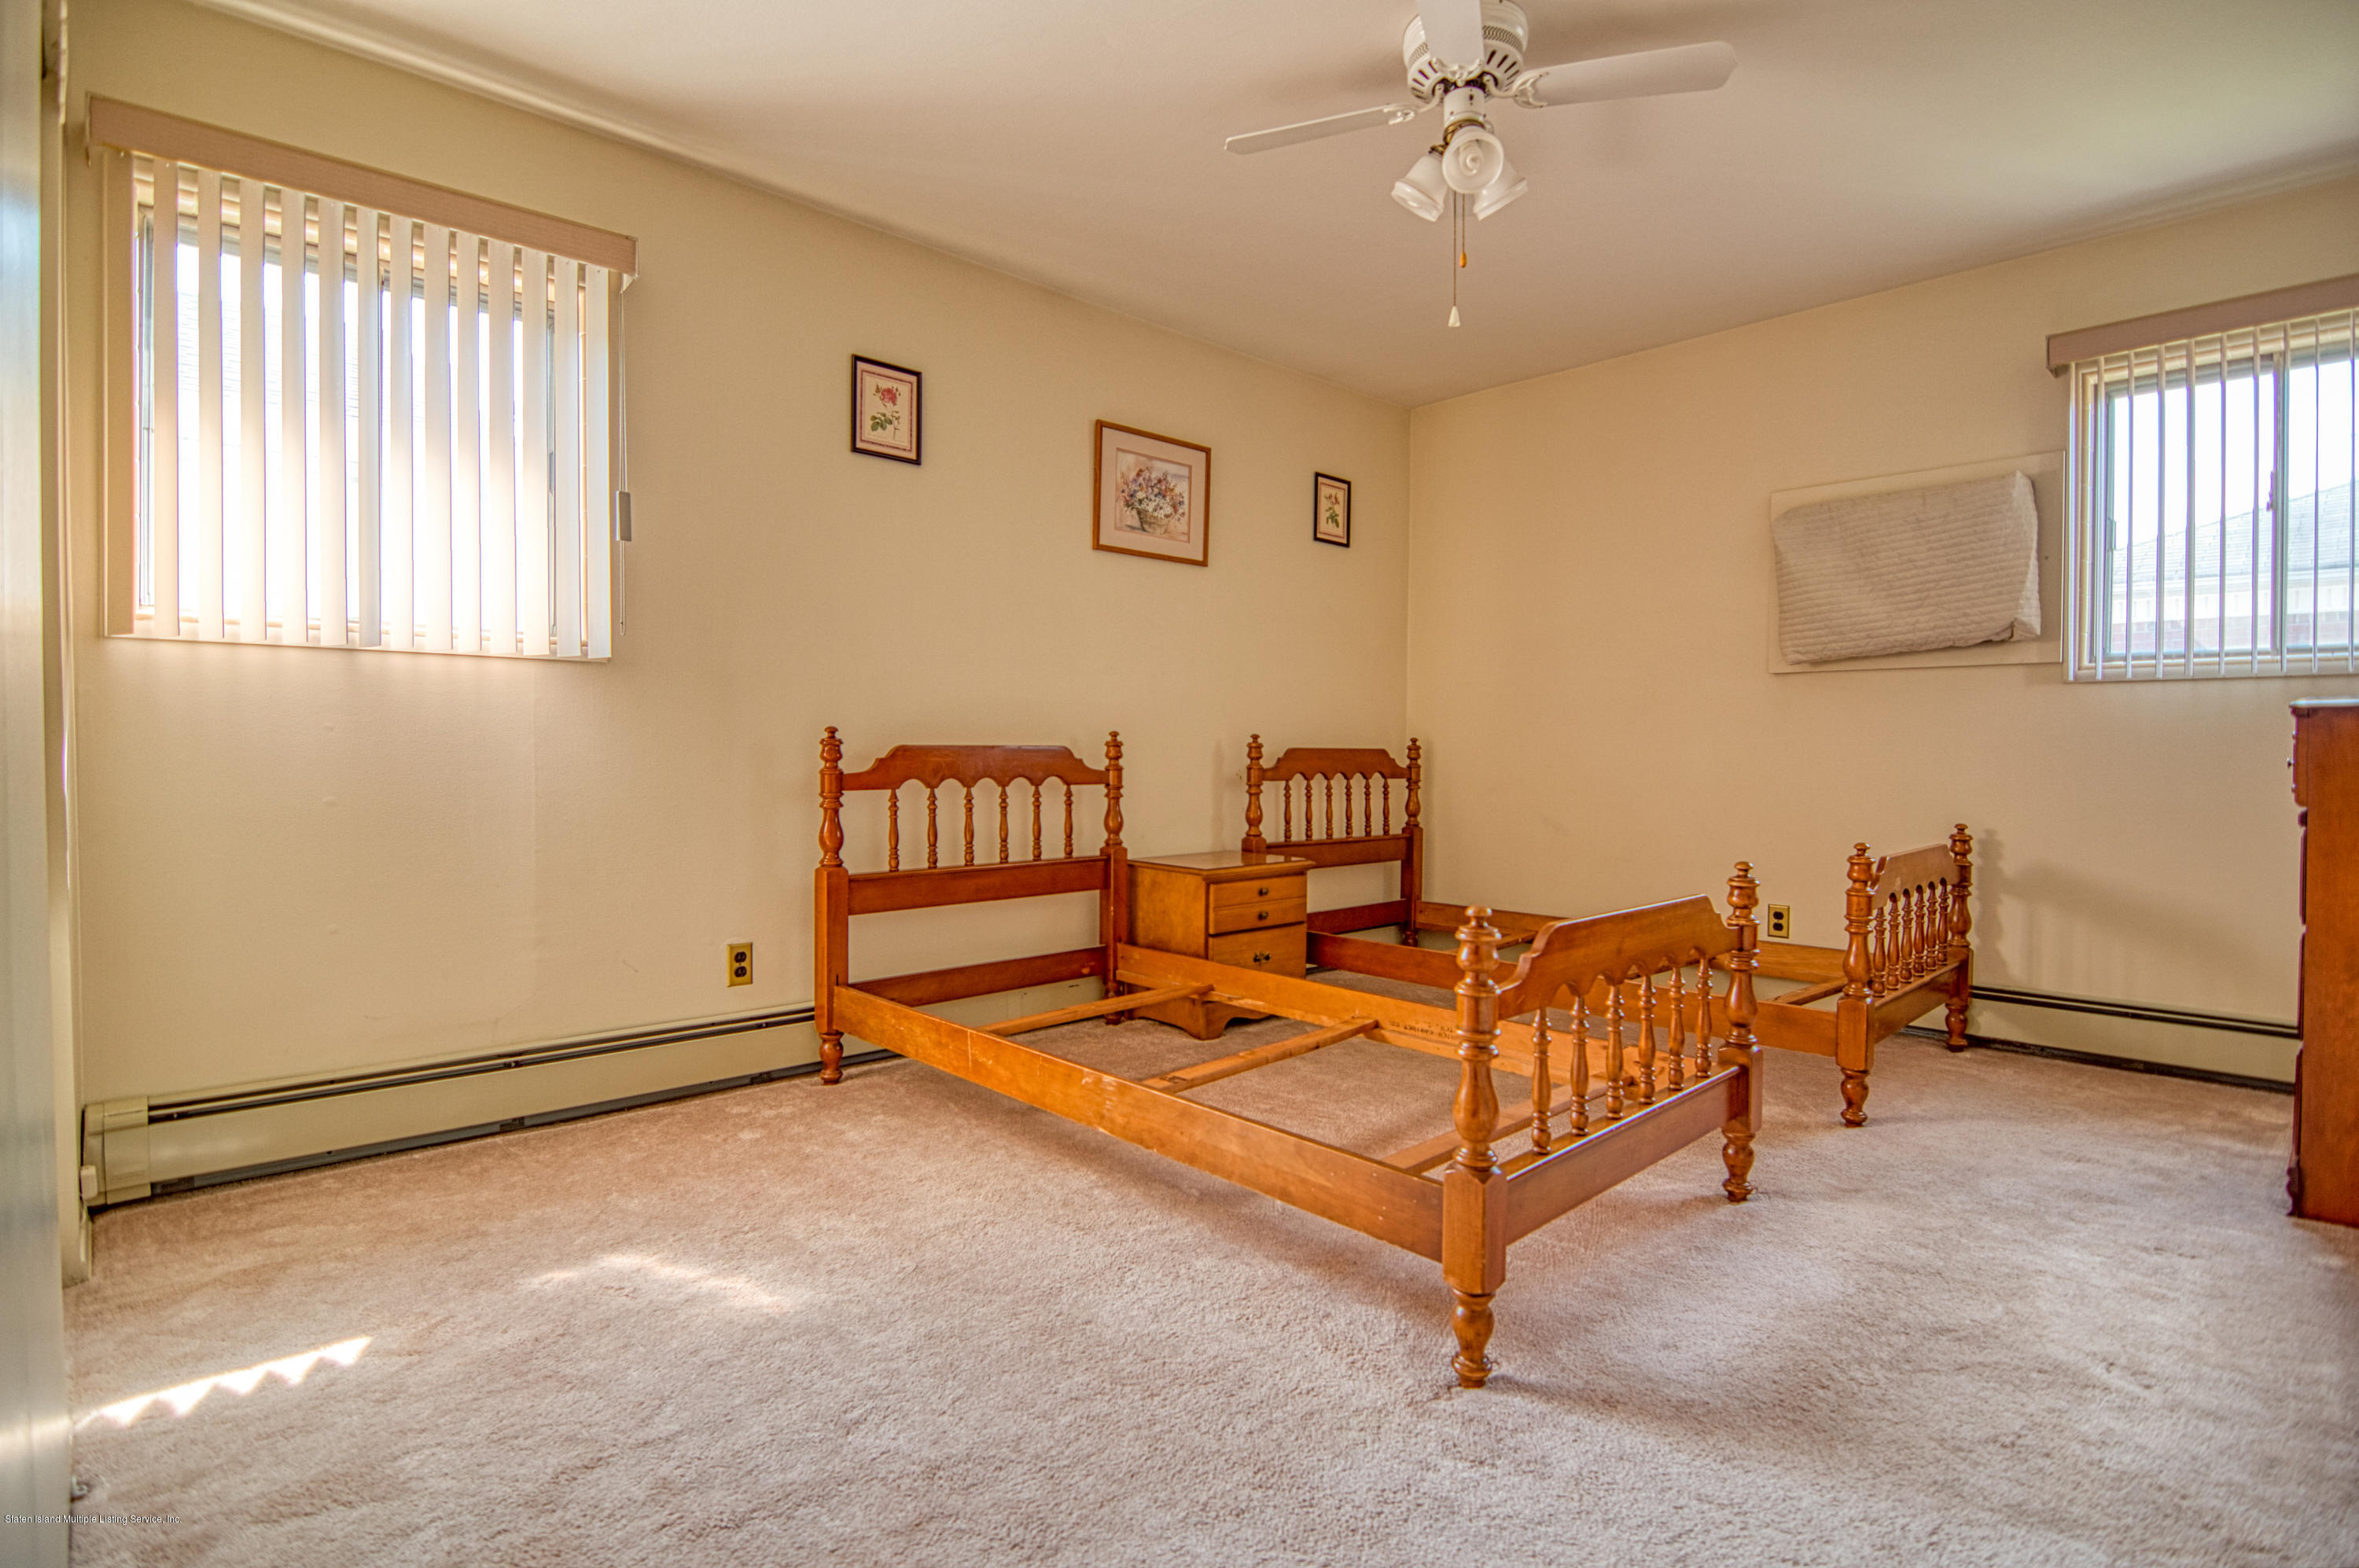 Single Family - Detached 124 Queen Street  Staten Island, NY 10314, MLS-1131413-12